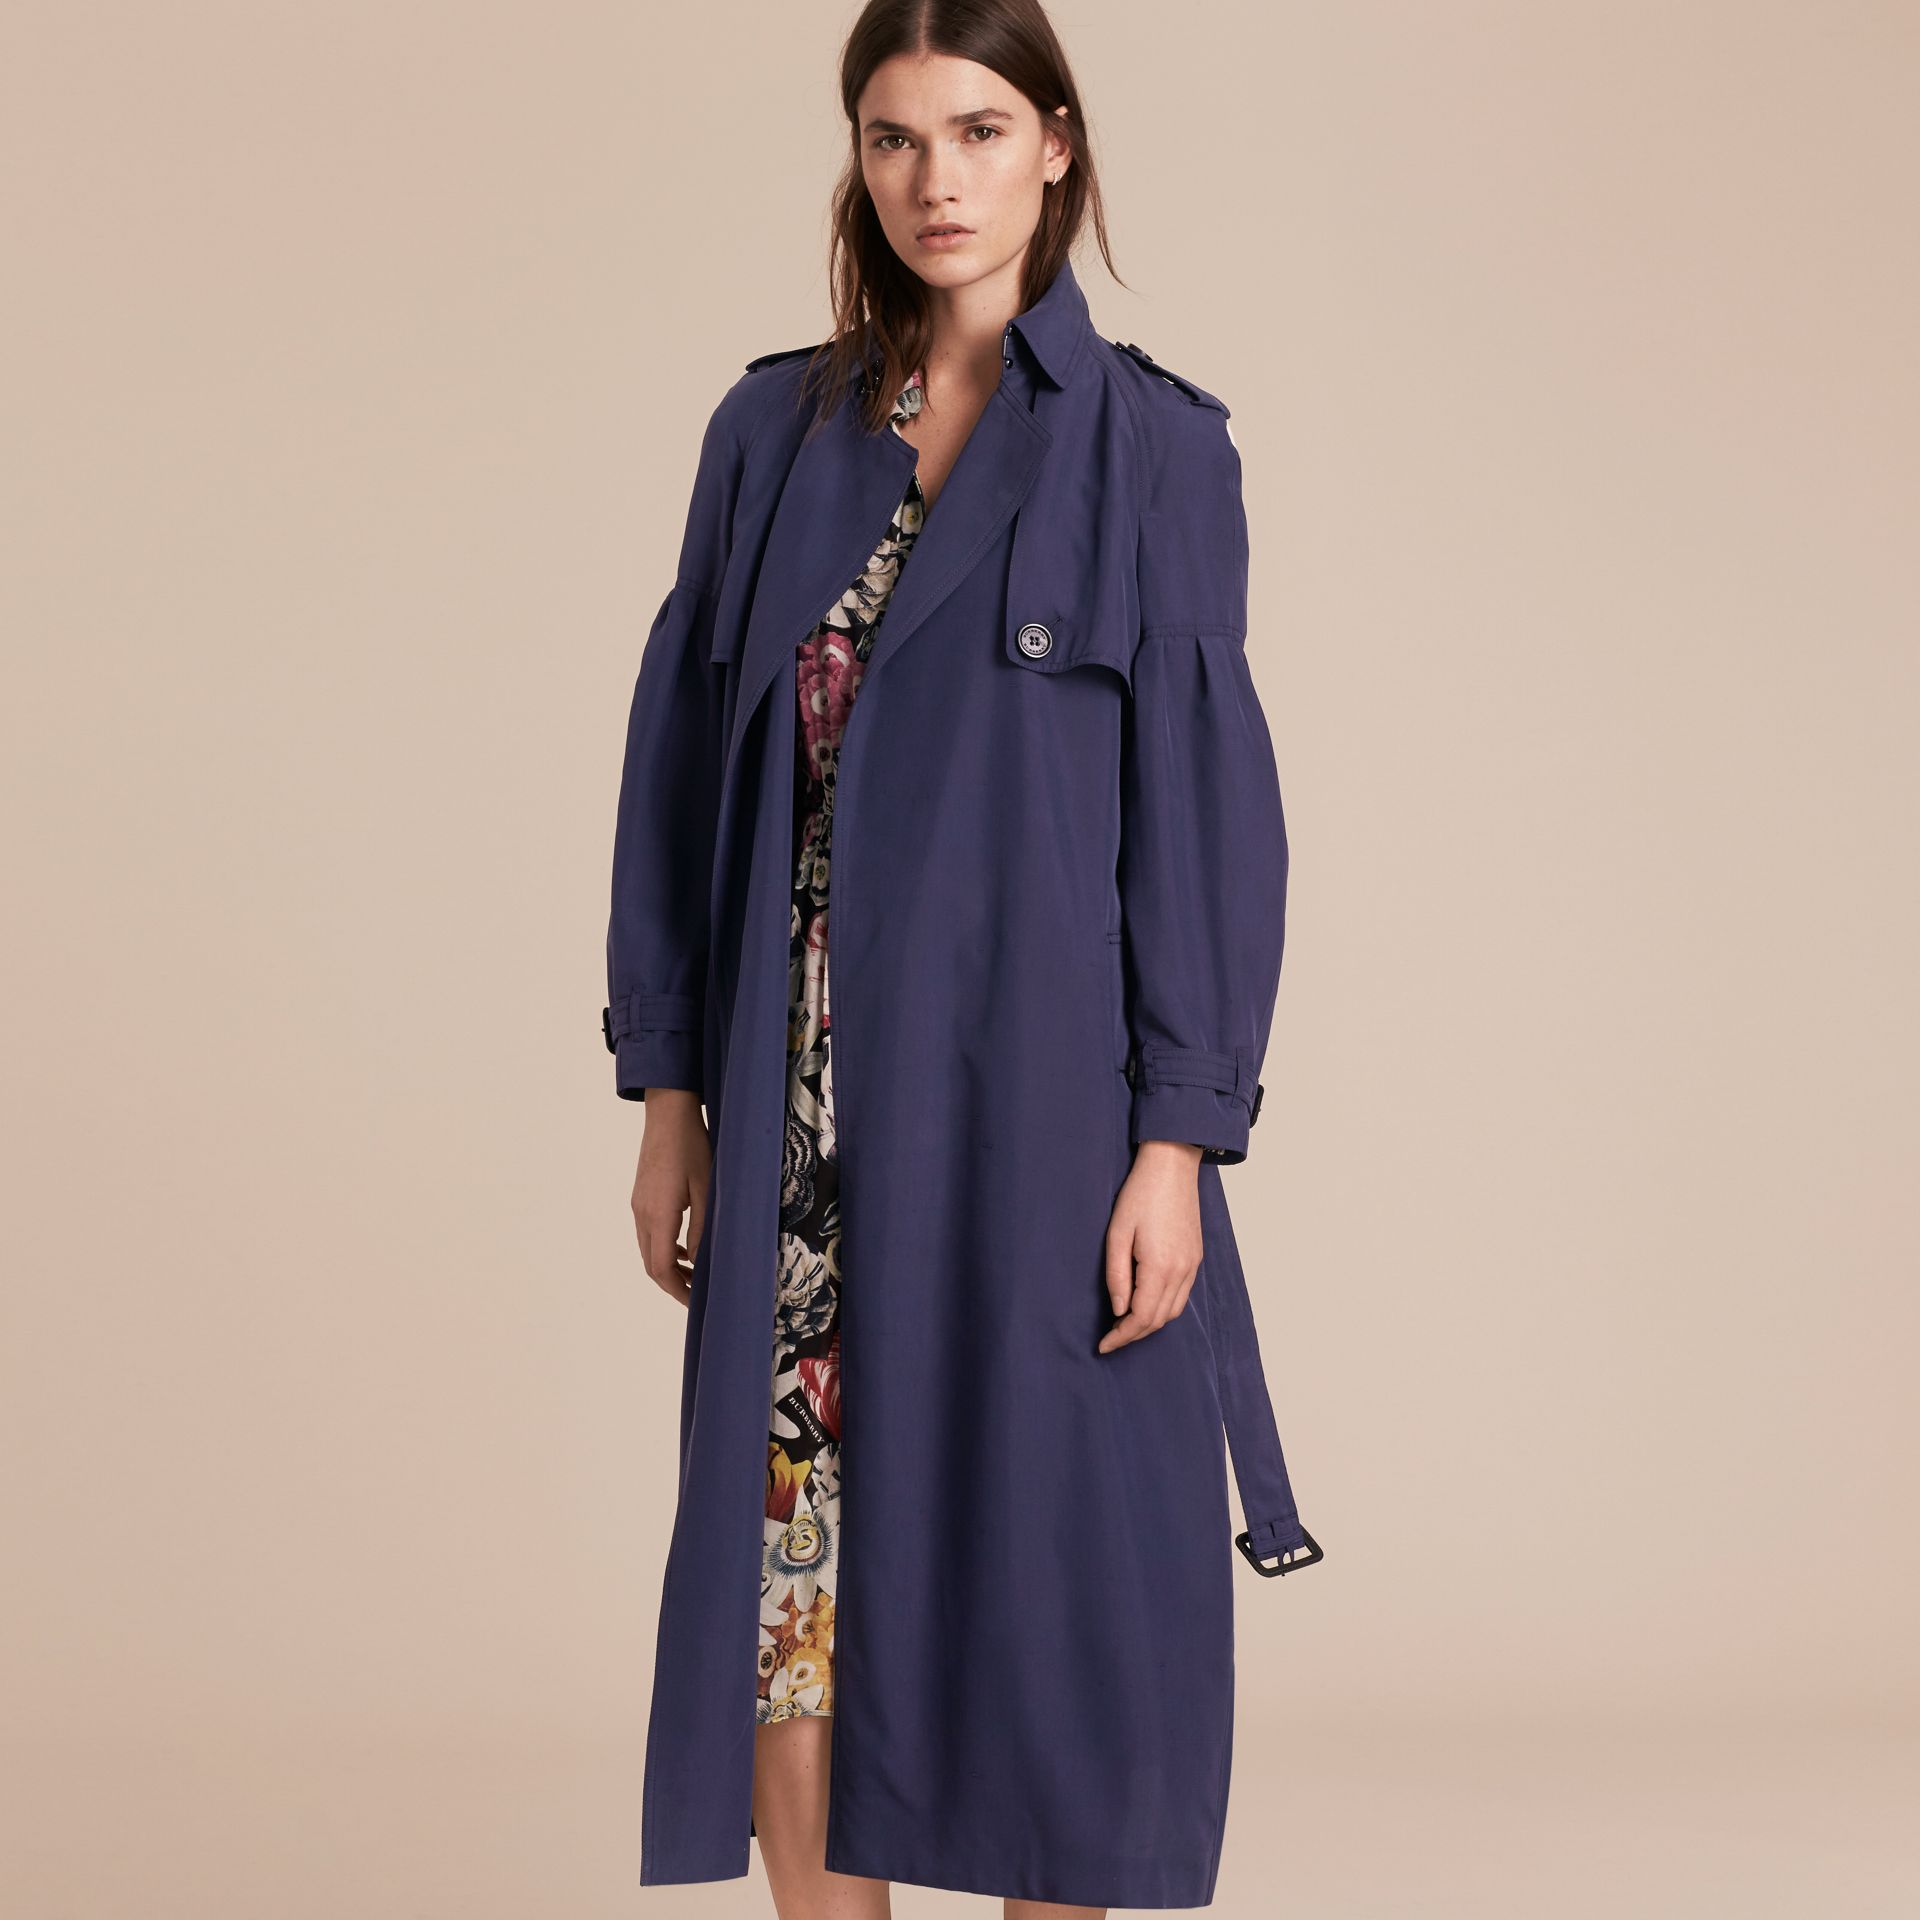 Oversize Silk Trench Coat with Puff Sleeves in Navy - Women | Burberry United Kingdom - gallery image 6